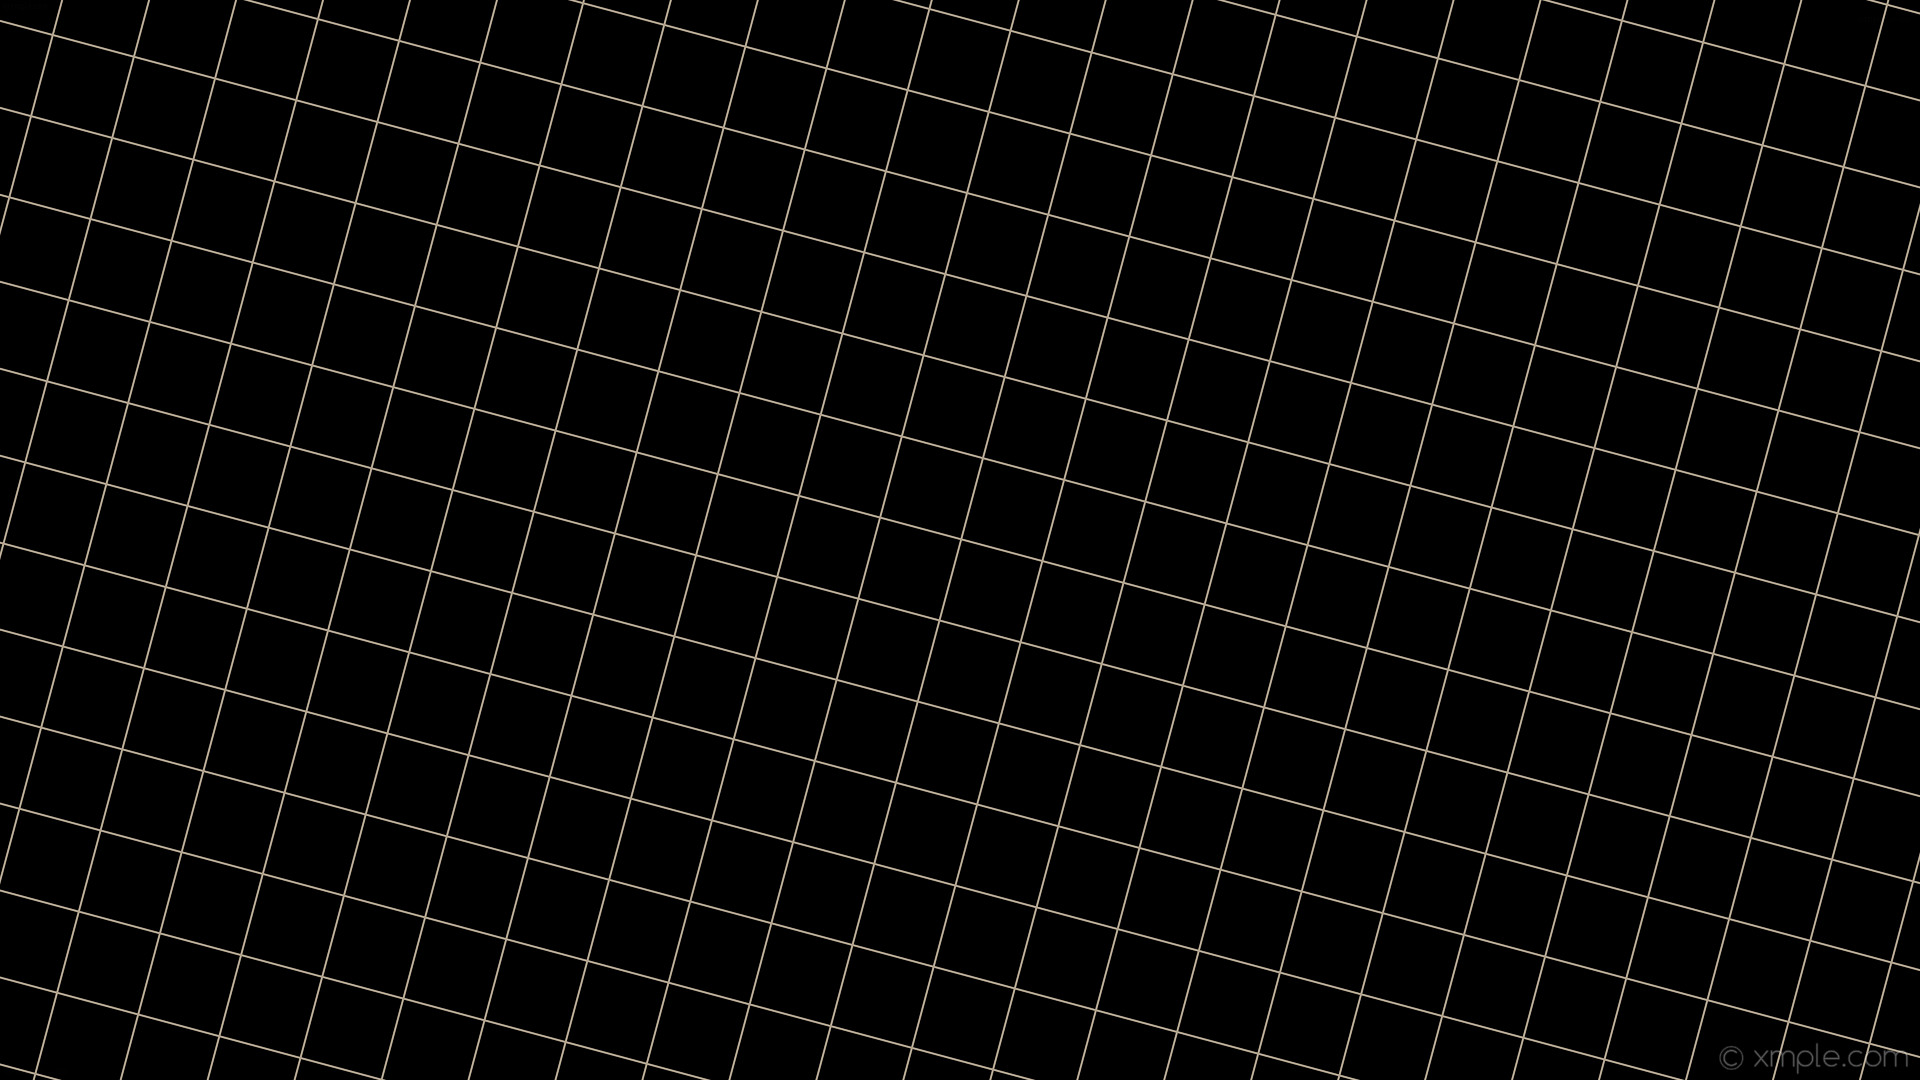 wallpaper graph paper brown black grid blanched almond #000000 #ffebcd 75°  2px 84px